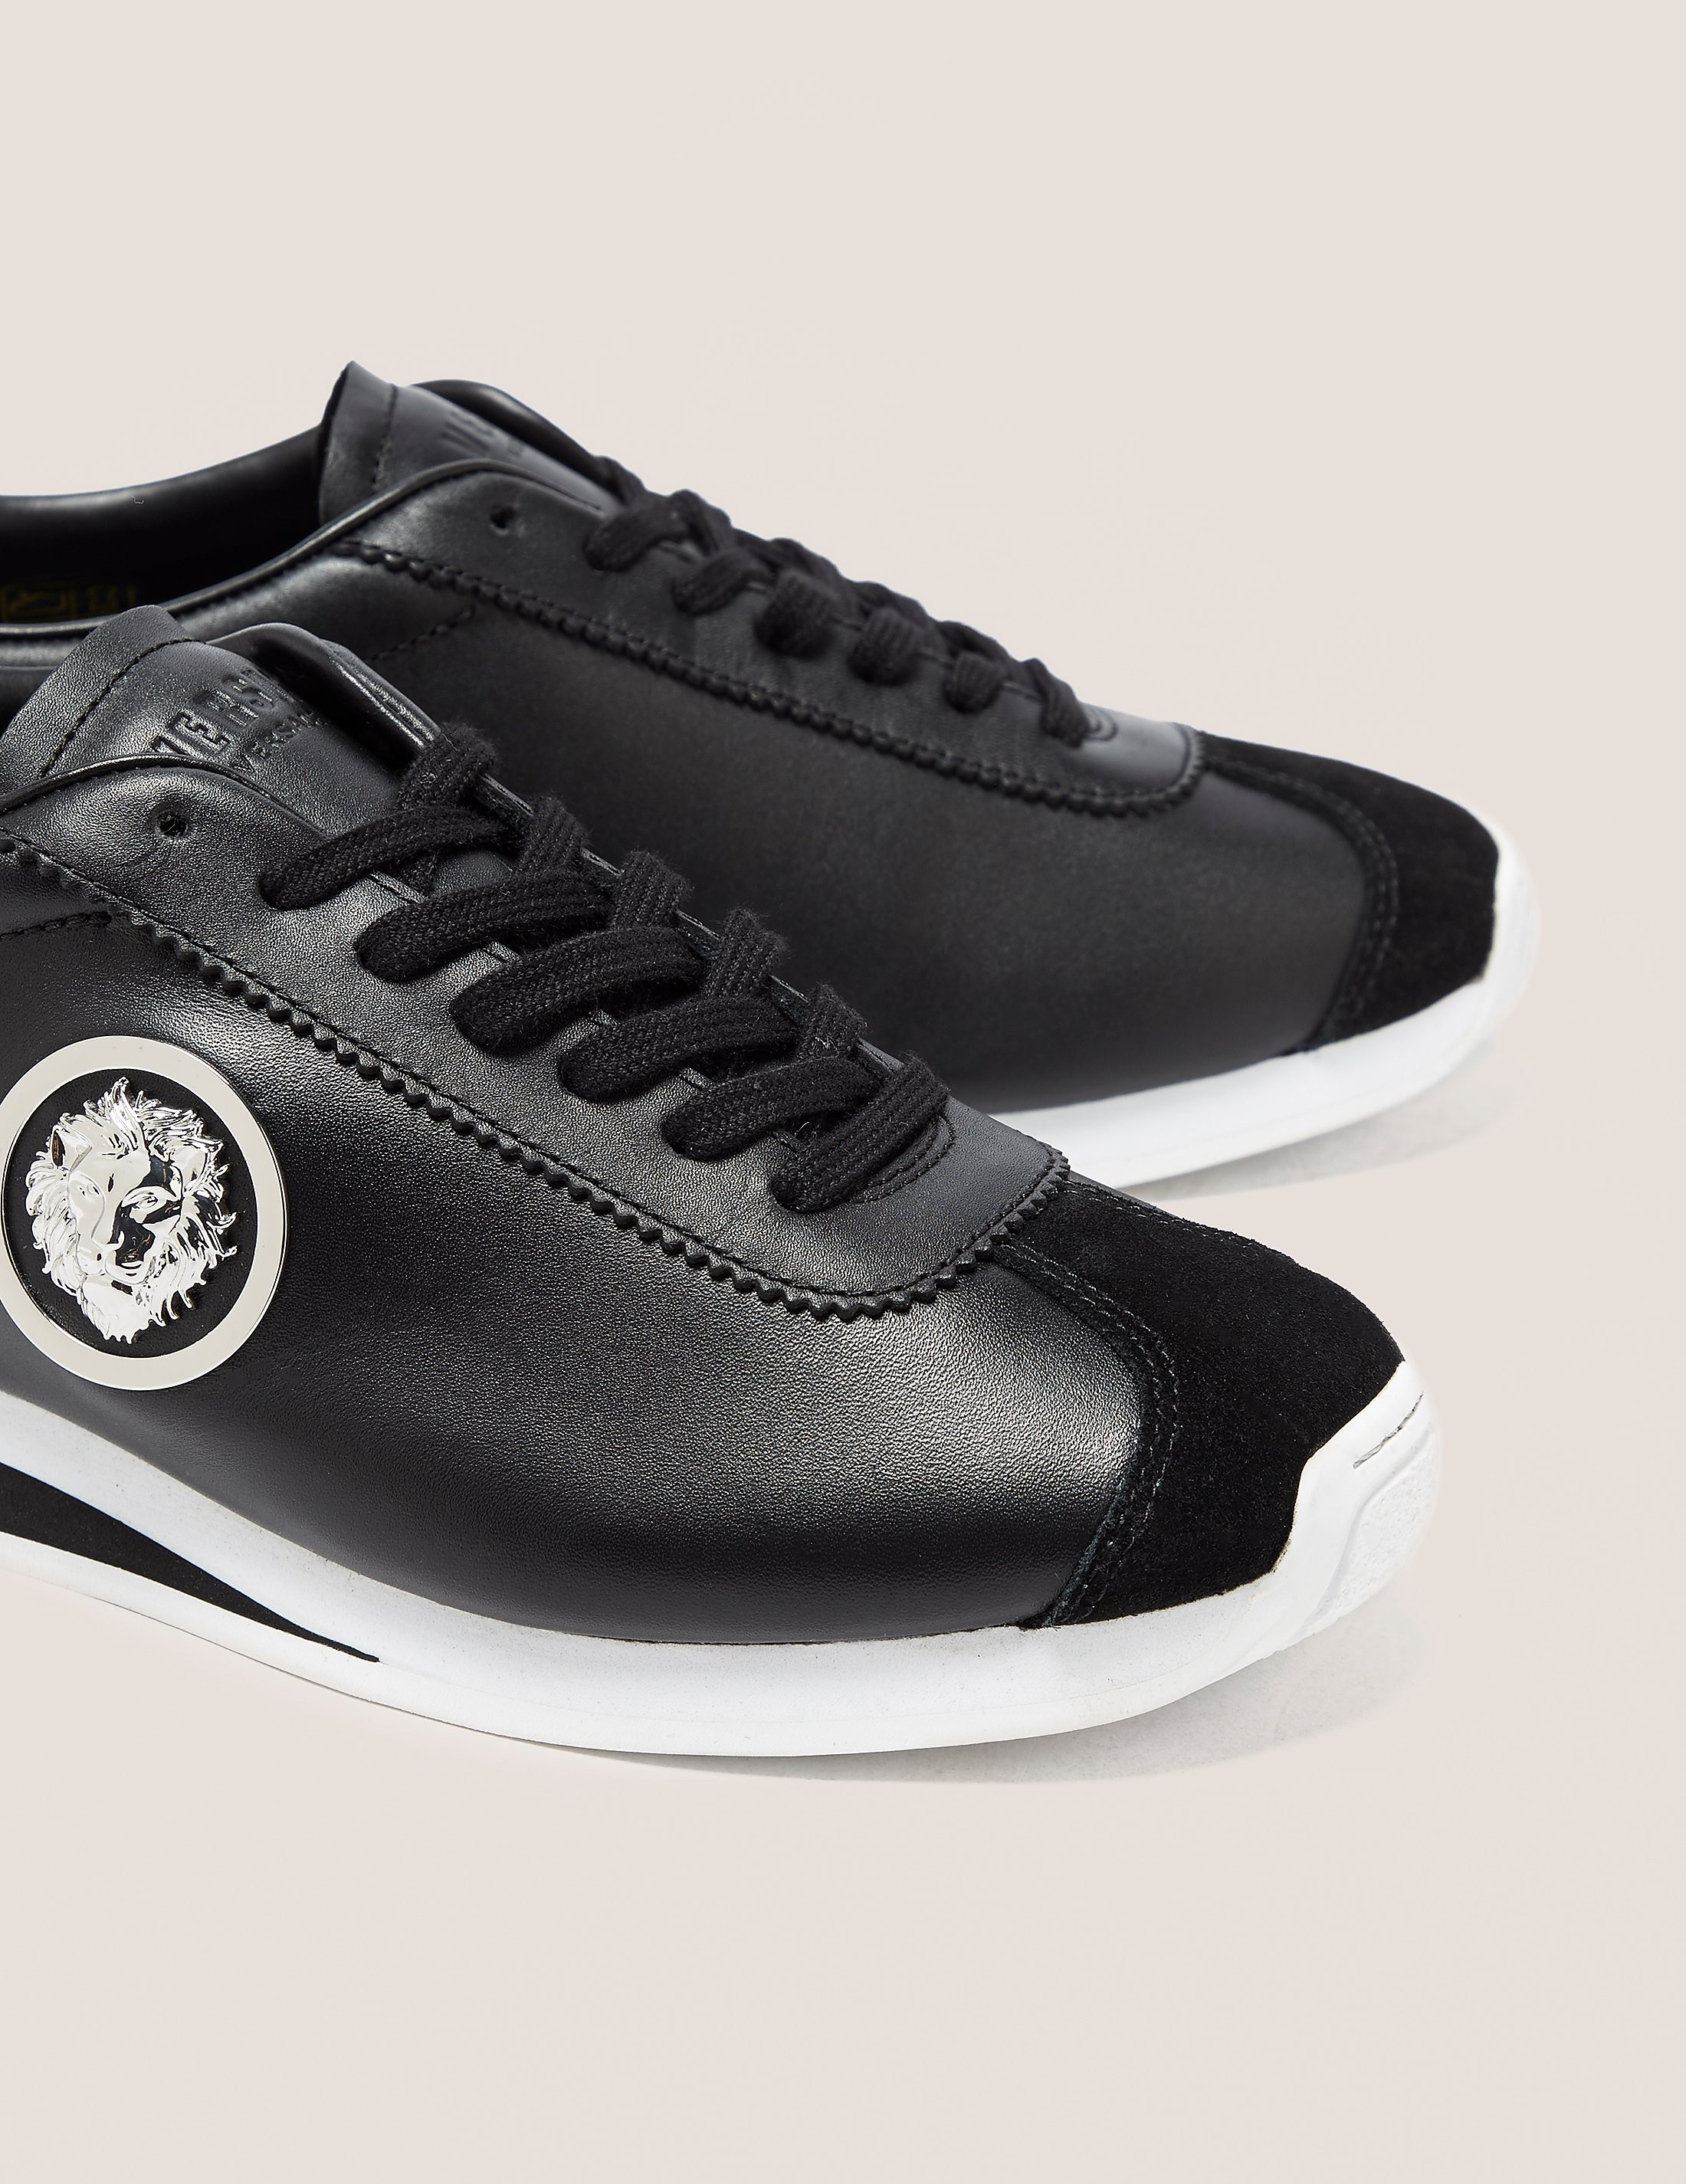 Versus Versace Lion Head Trainers